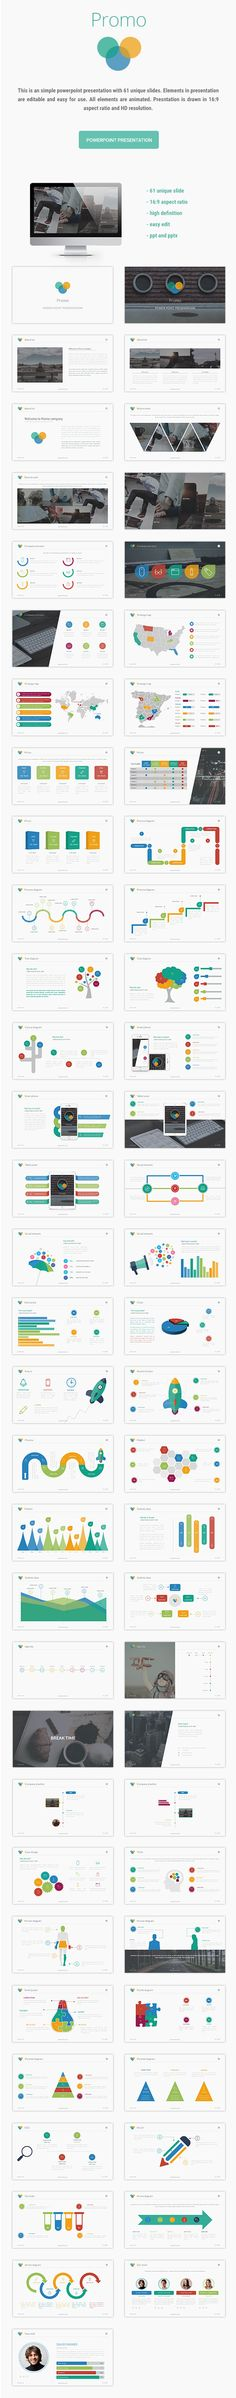 Promo PowerPoint Template #design #slides Download: http://graphicriver.net/item/promo/12358265?ref=ksioks